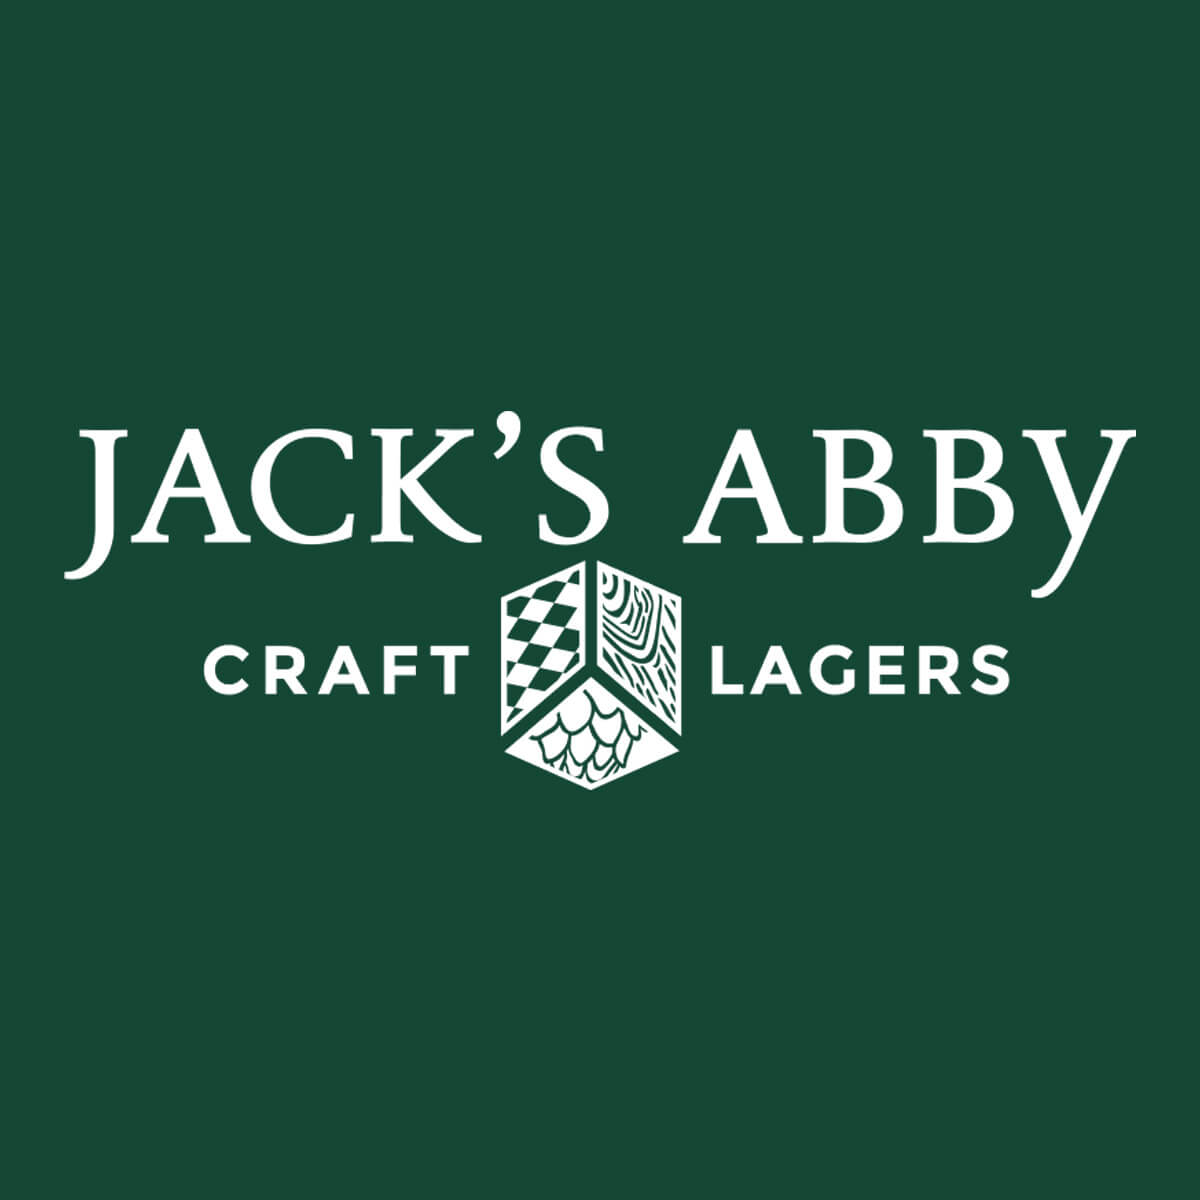 jack s wholesale windows grand rapids jacks abby drink lager framingham ma